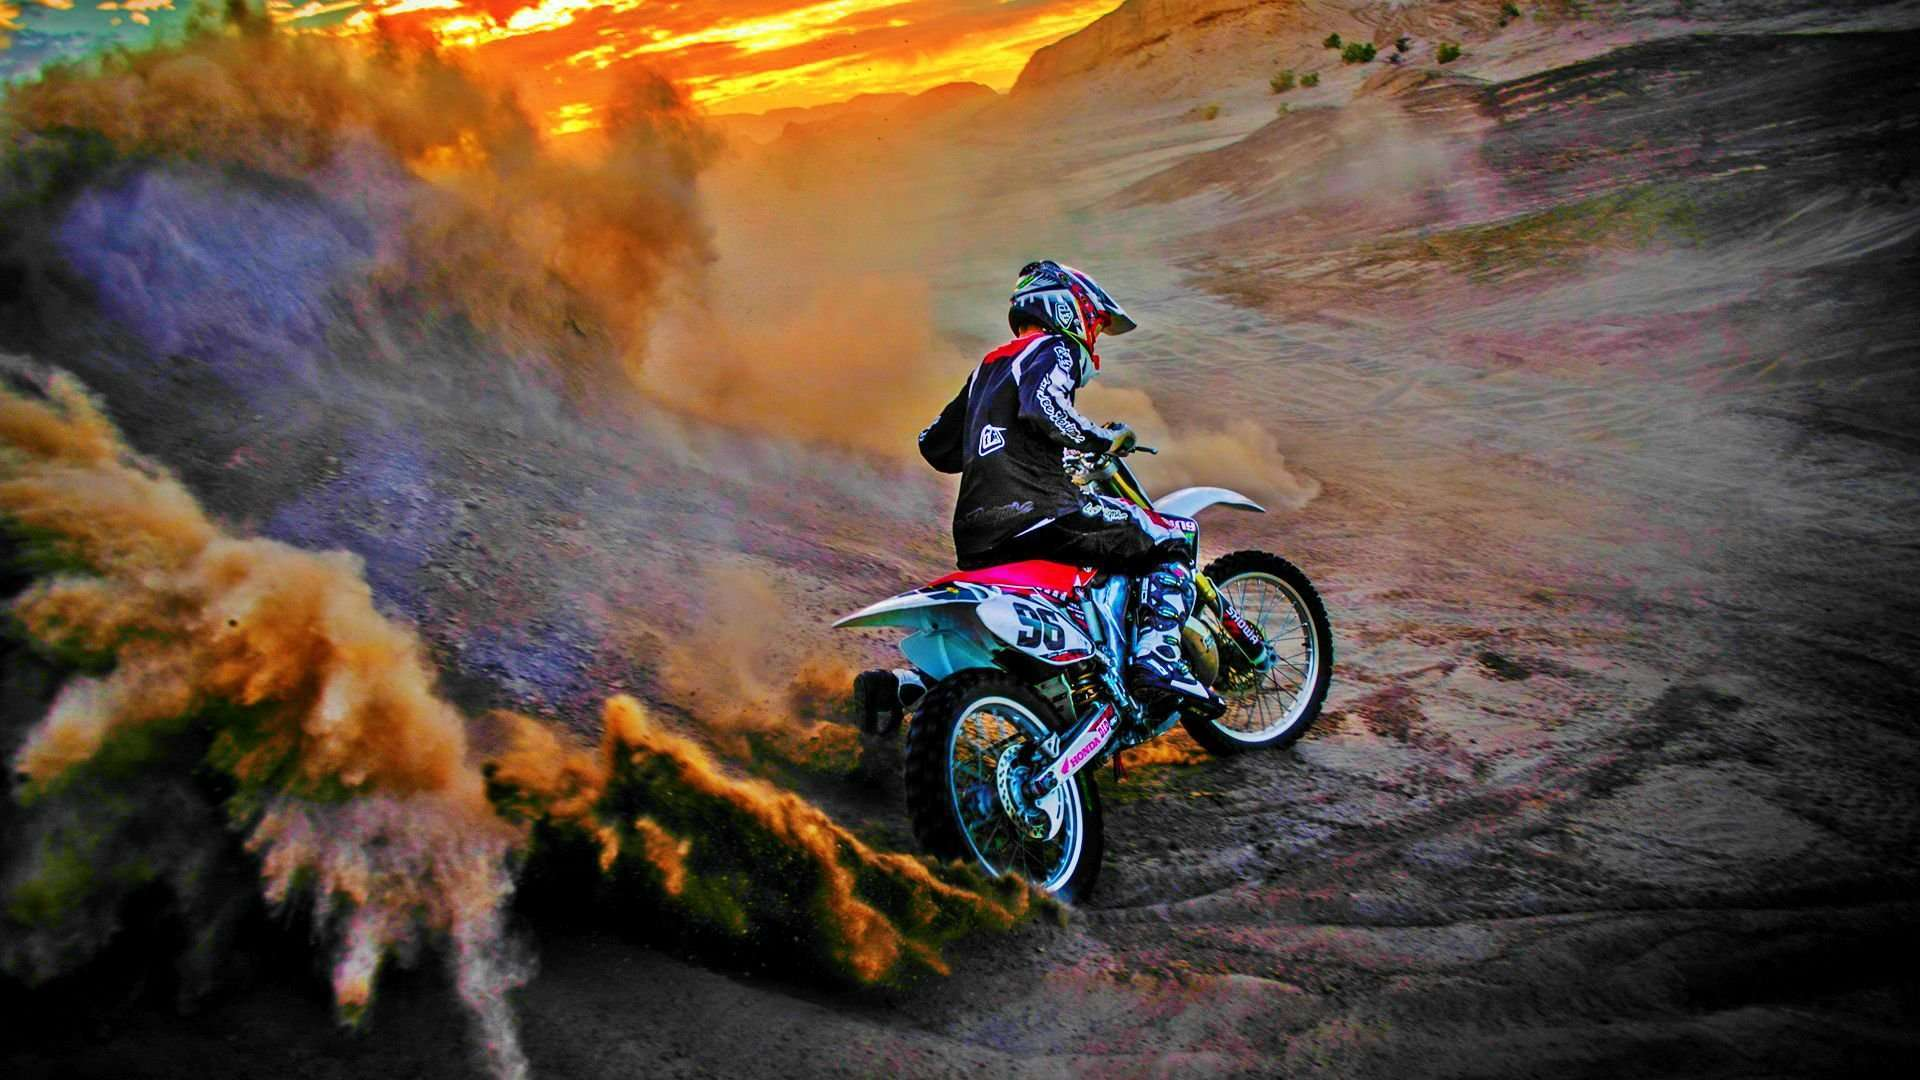 HD wallpaper Dirt Bike   wallpaper21com 1920x1080